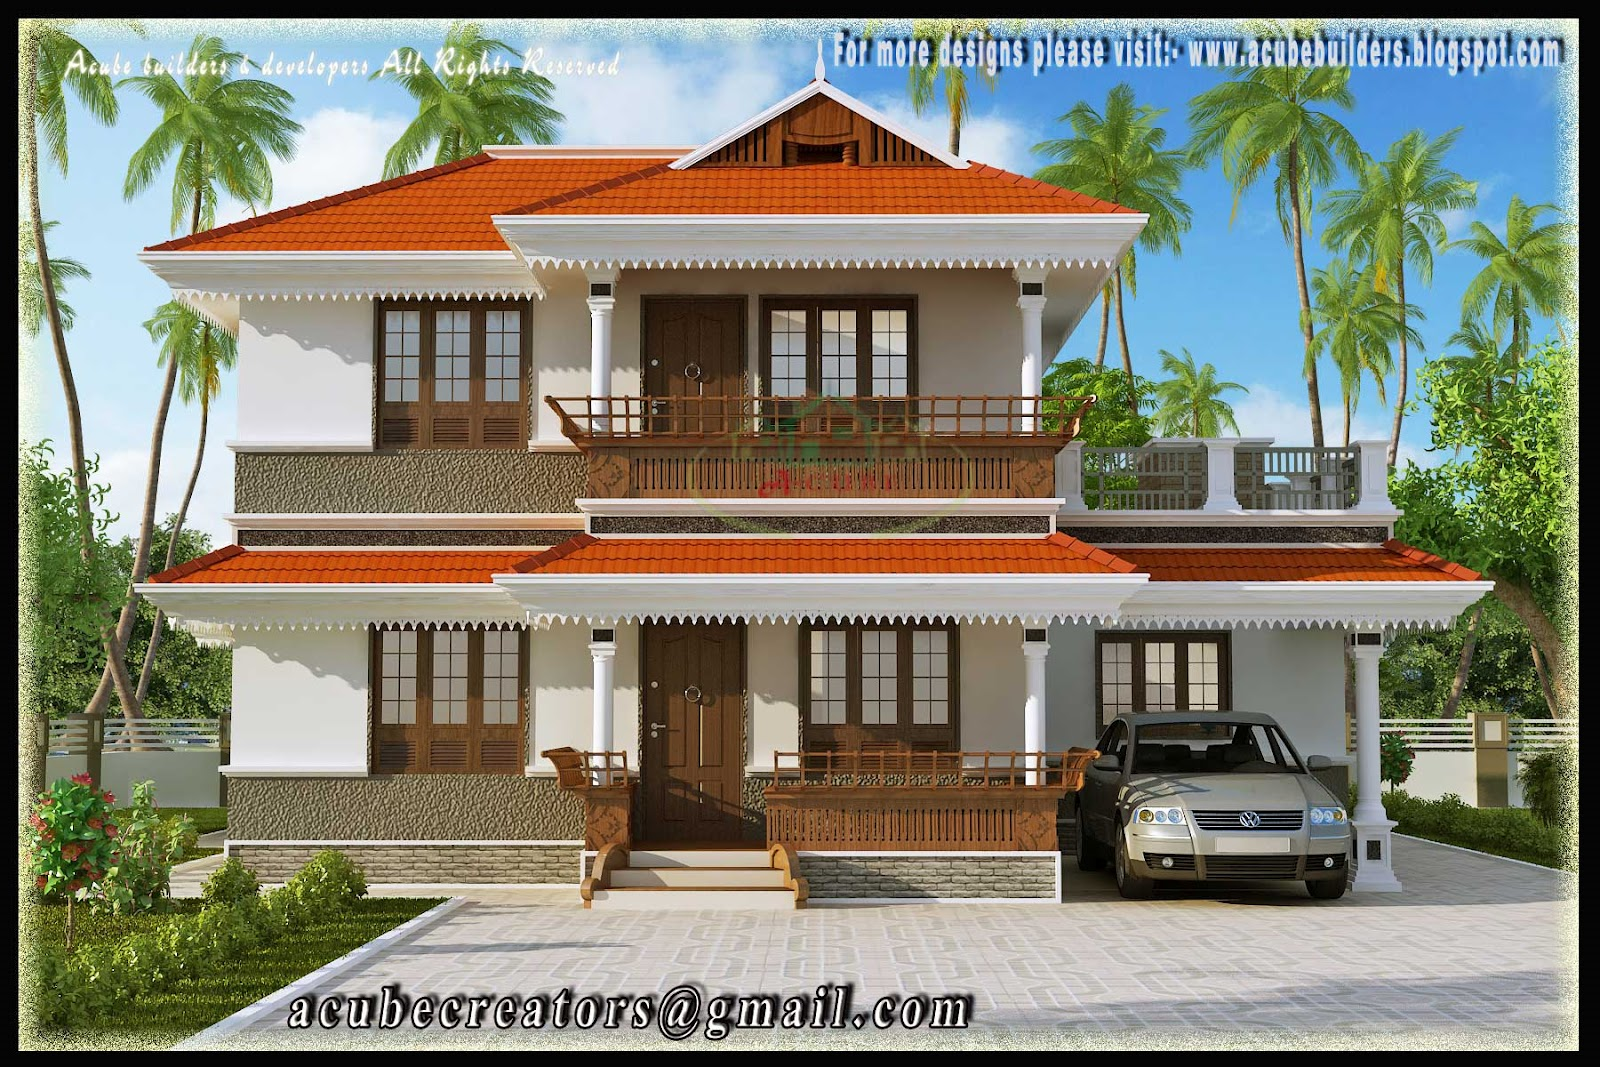 A Cube Creators Beautiful Kerala Style 2 Storey House